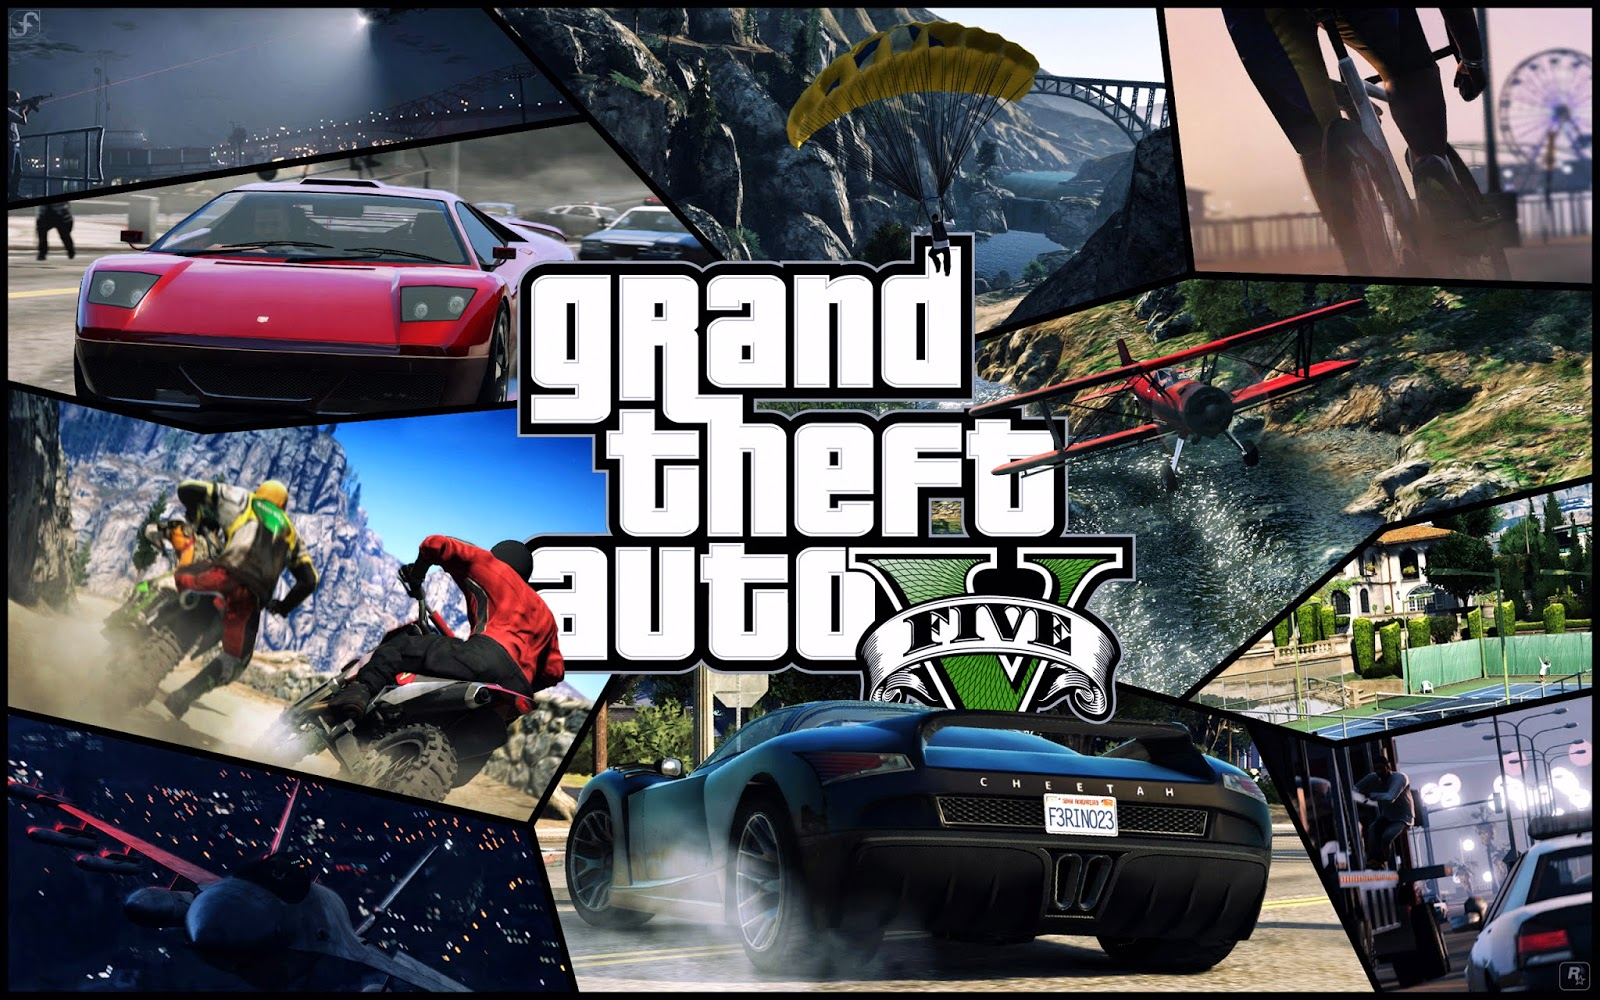 Cool GTA V HD Wallpapers 2015 | Tops HD Wallpapers